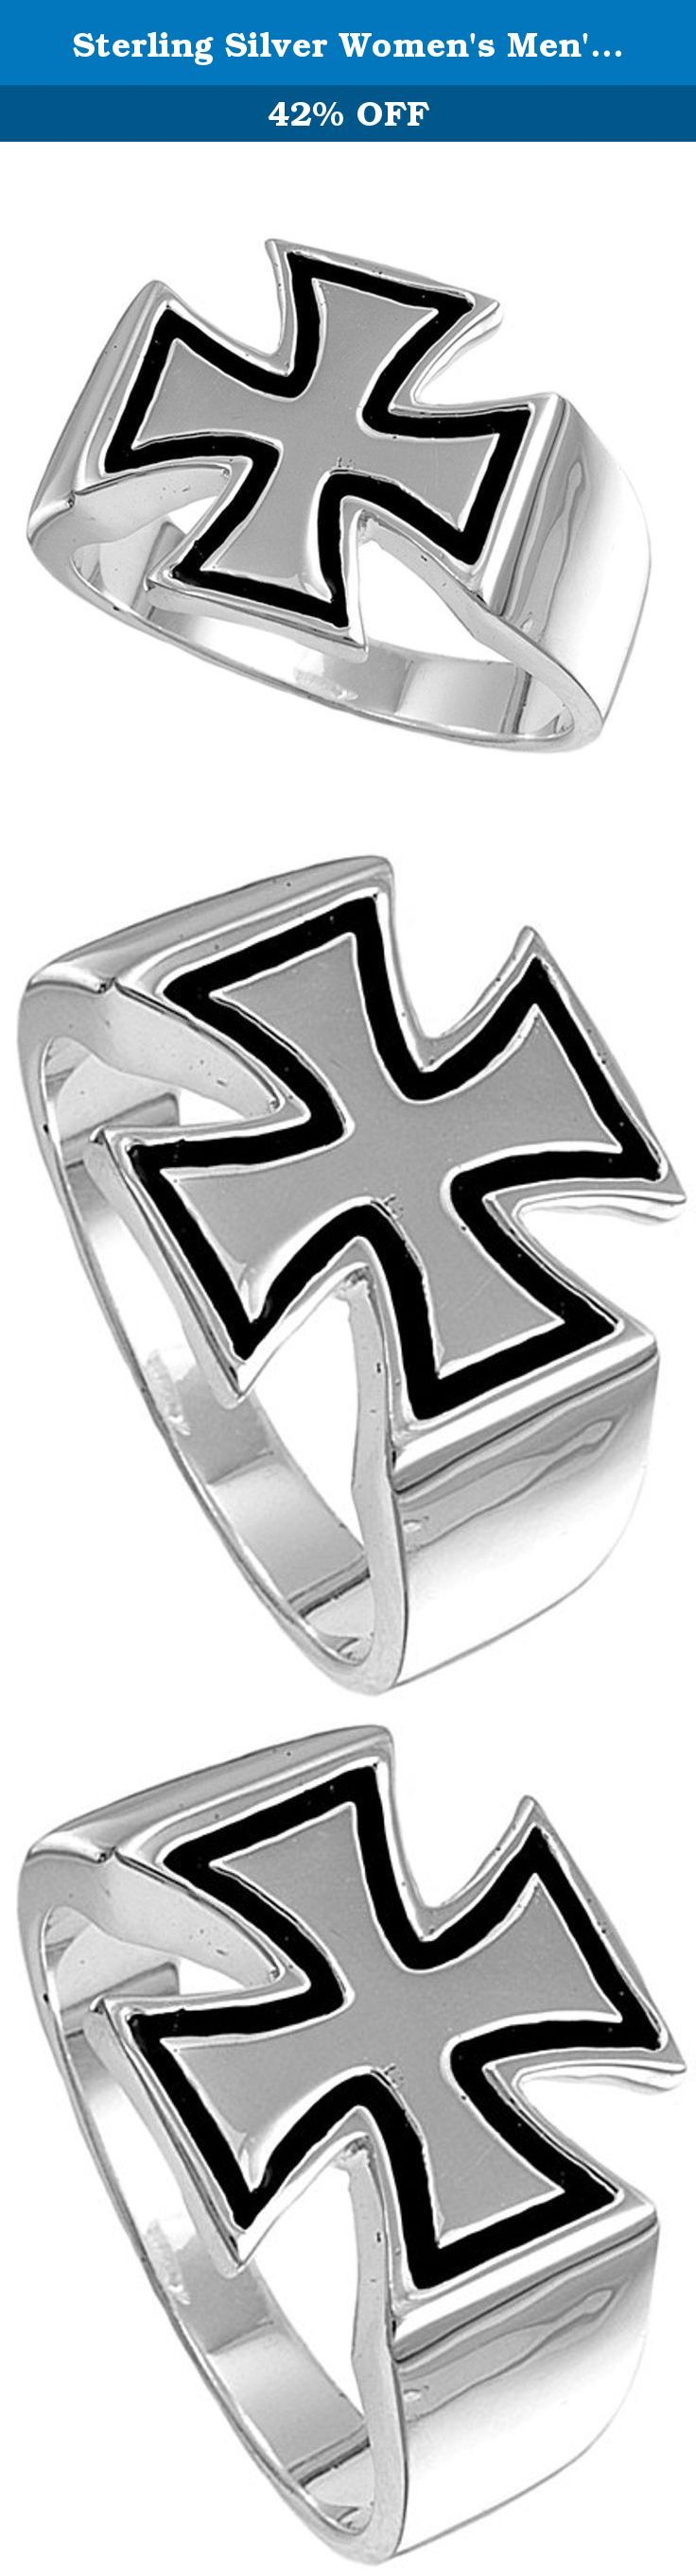 Sterling Silver Women's Men's Iron Cross Ring Unique 925 Band 15mm Size 6 (RNG13228-6). All our silver jewelry is crafted from .925 silver also commonly referred to as sterling silver. Sterling silver is the standard for beautiful high-quality silver jewelry and can not be replicated by lower priced silver plated jewelry. It is 92.5% pure silver, mixed with alloys to add strength and durability to stand the test of time. We promise superior service which includes fast shipping, great...